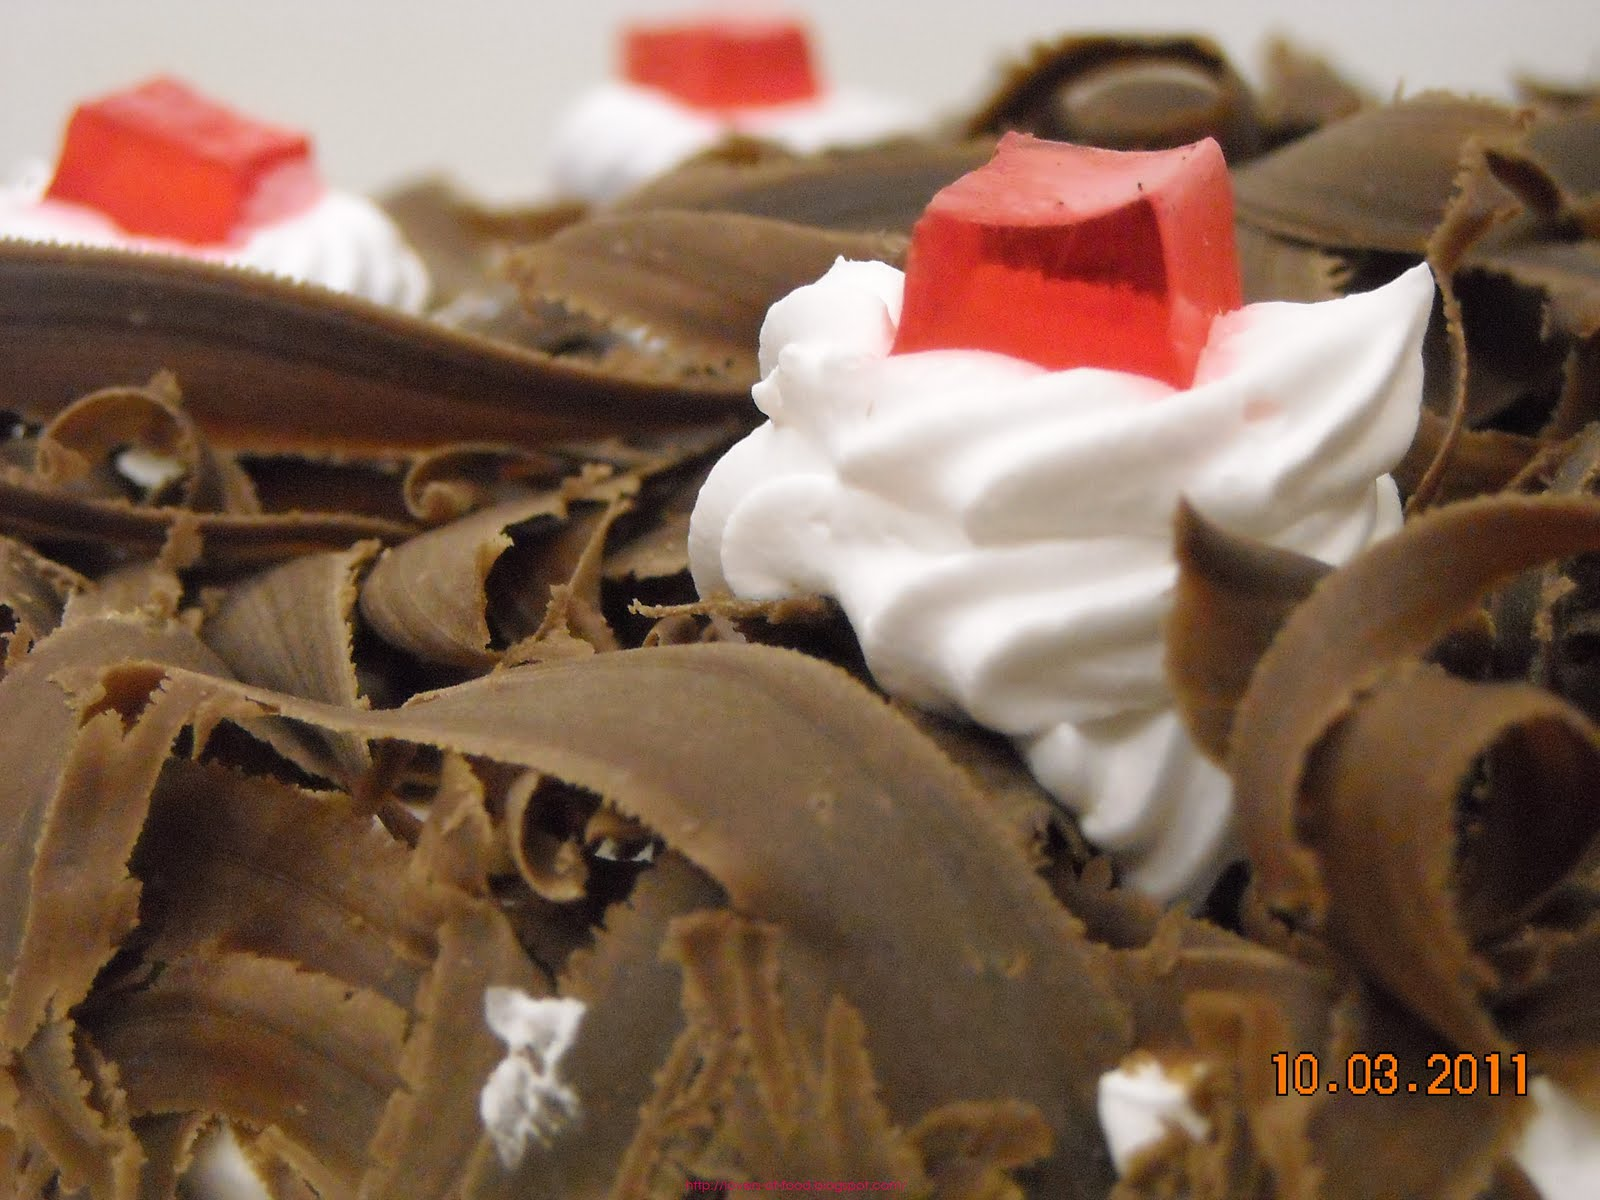 Food from all over the World: Shredded chocolate topped simple ...